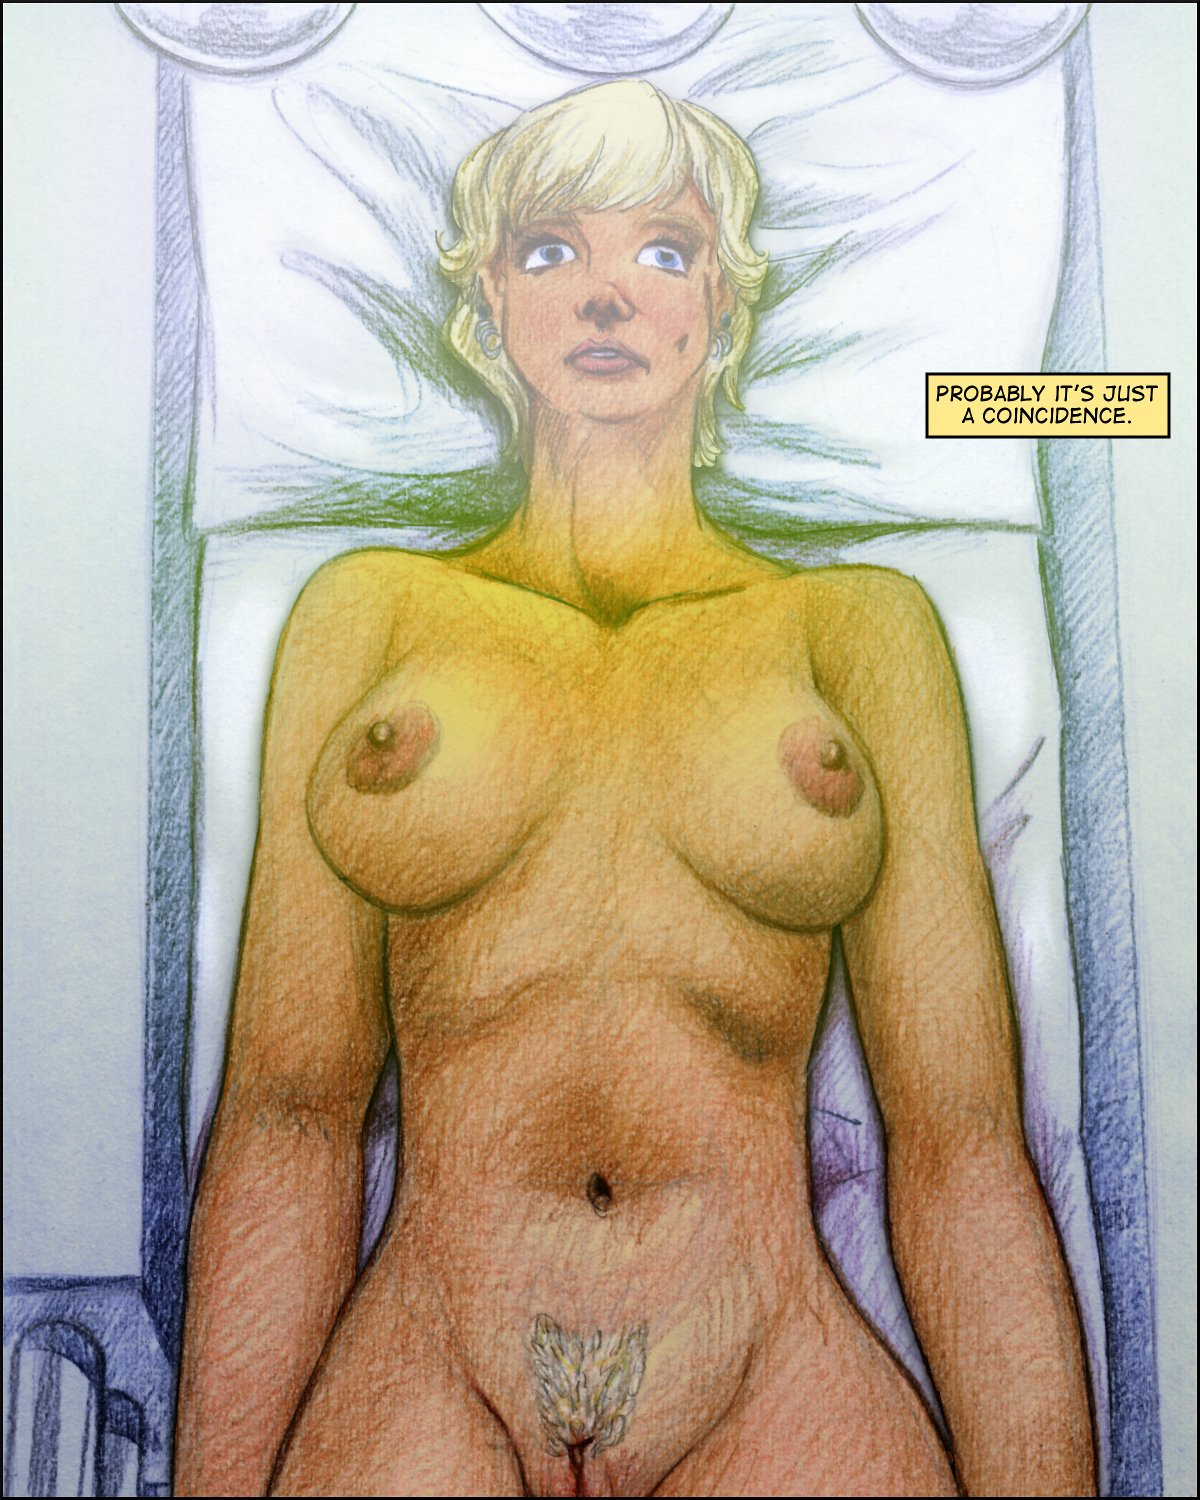 Jill naked in the scanner -- a color page.